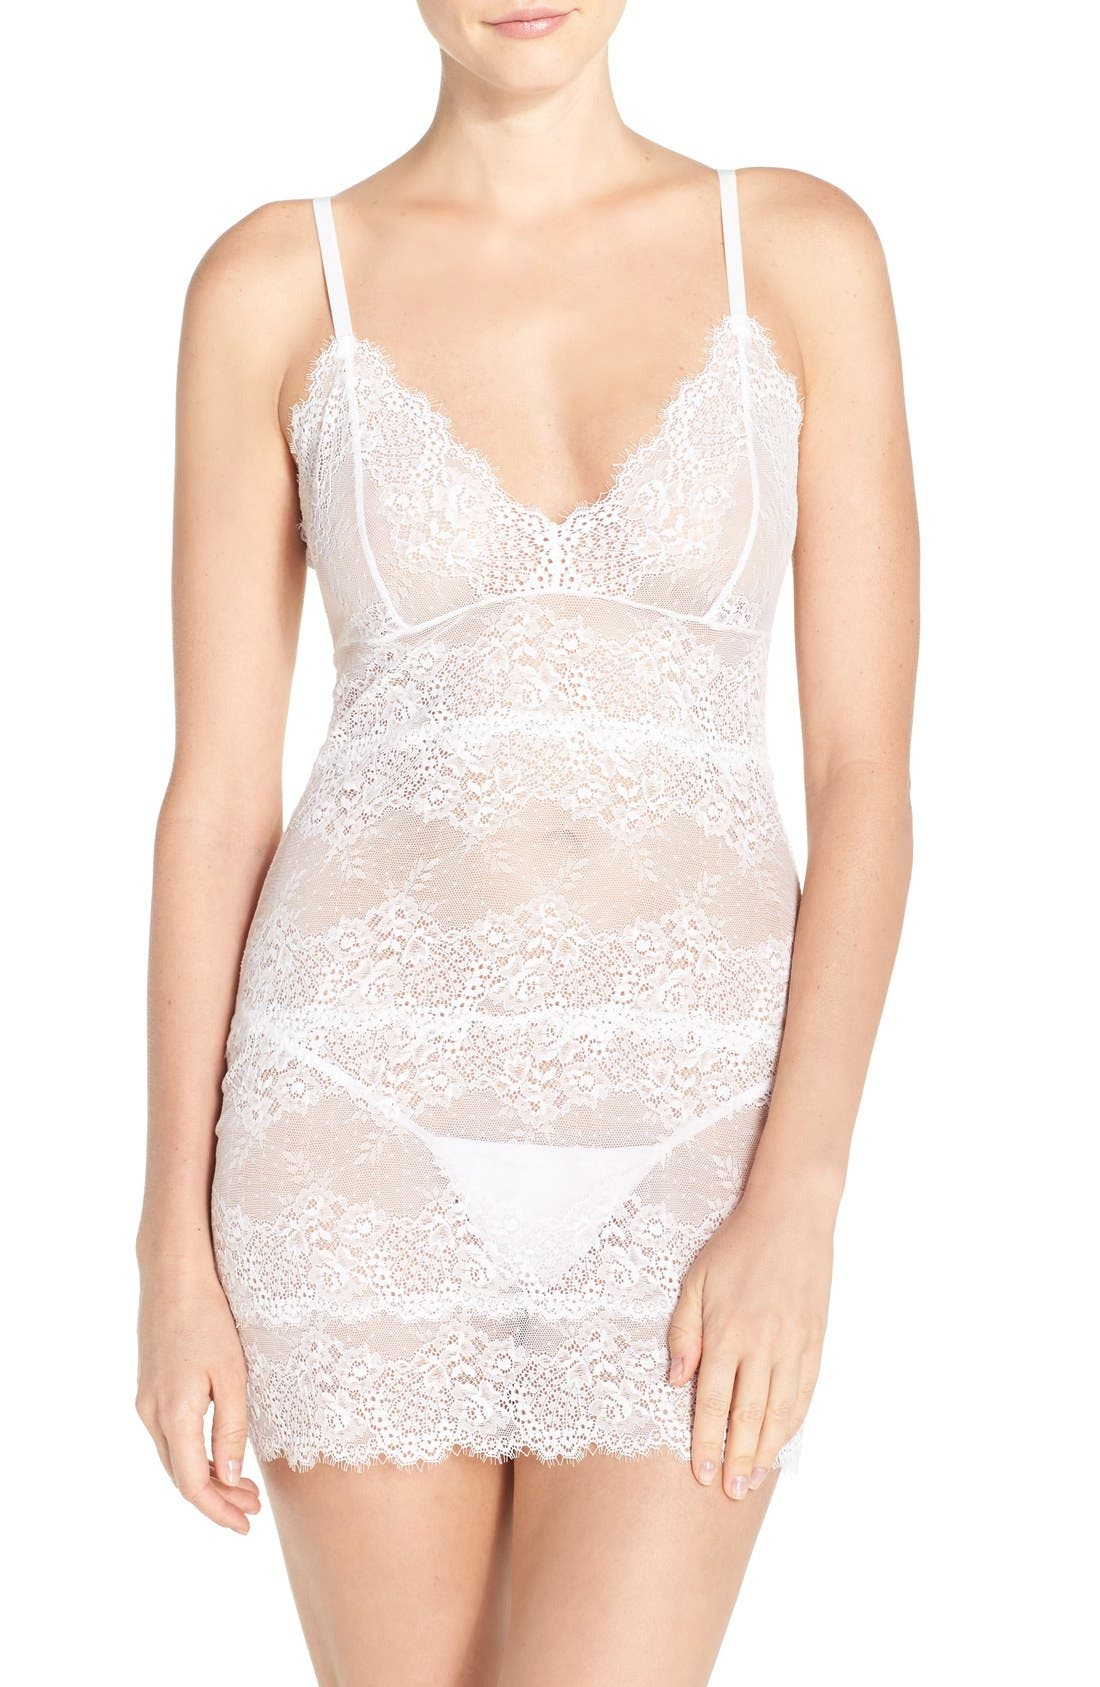 Samantha Chang Honeymoon Too Lace Chemise